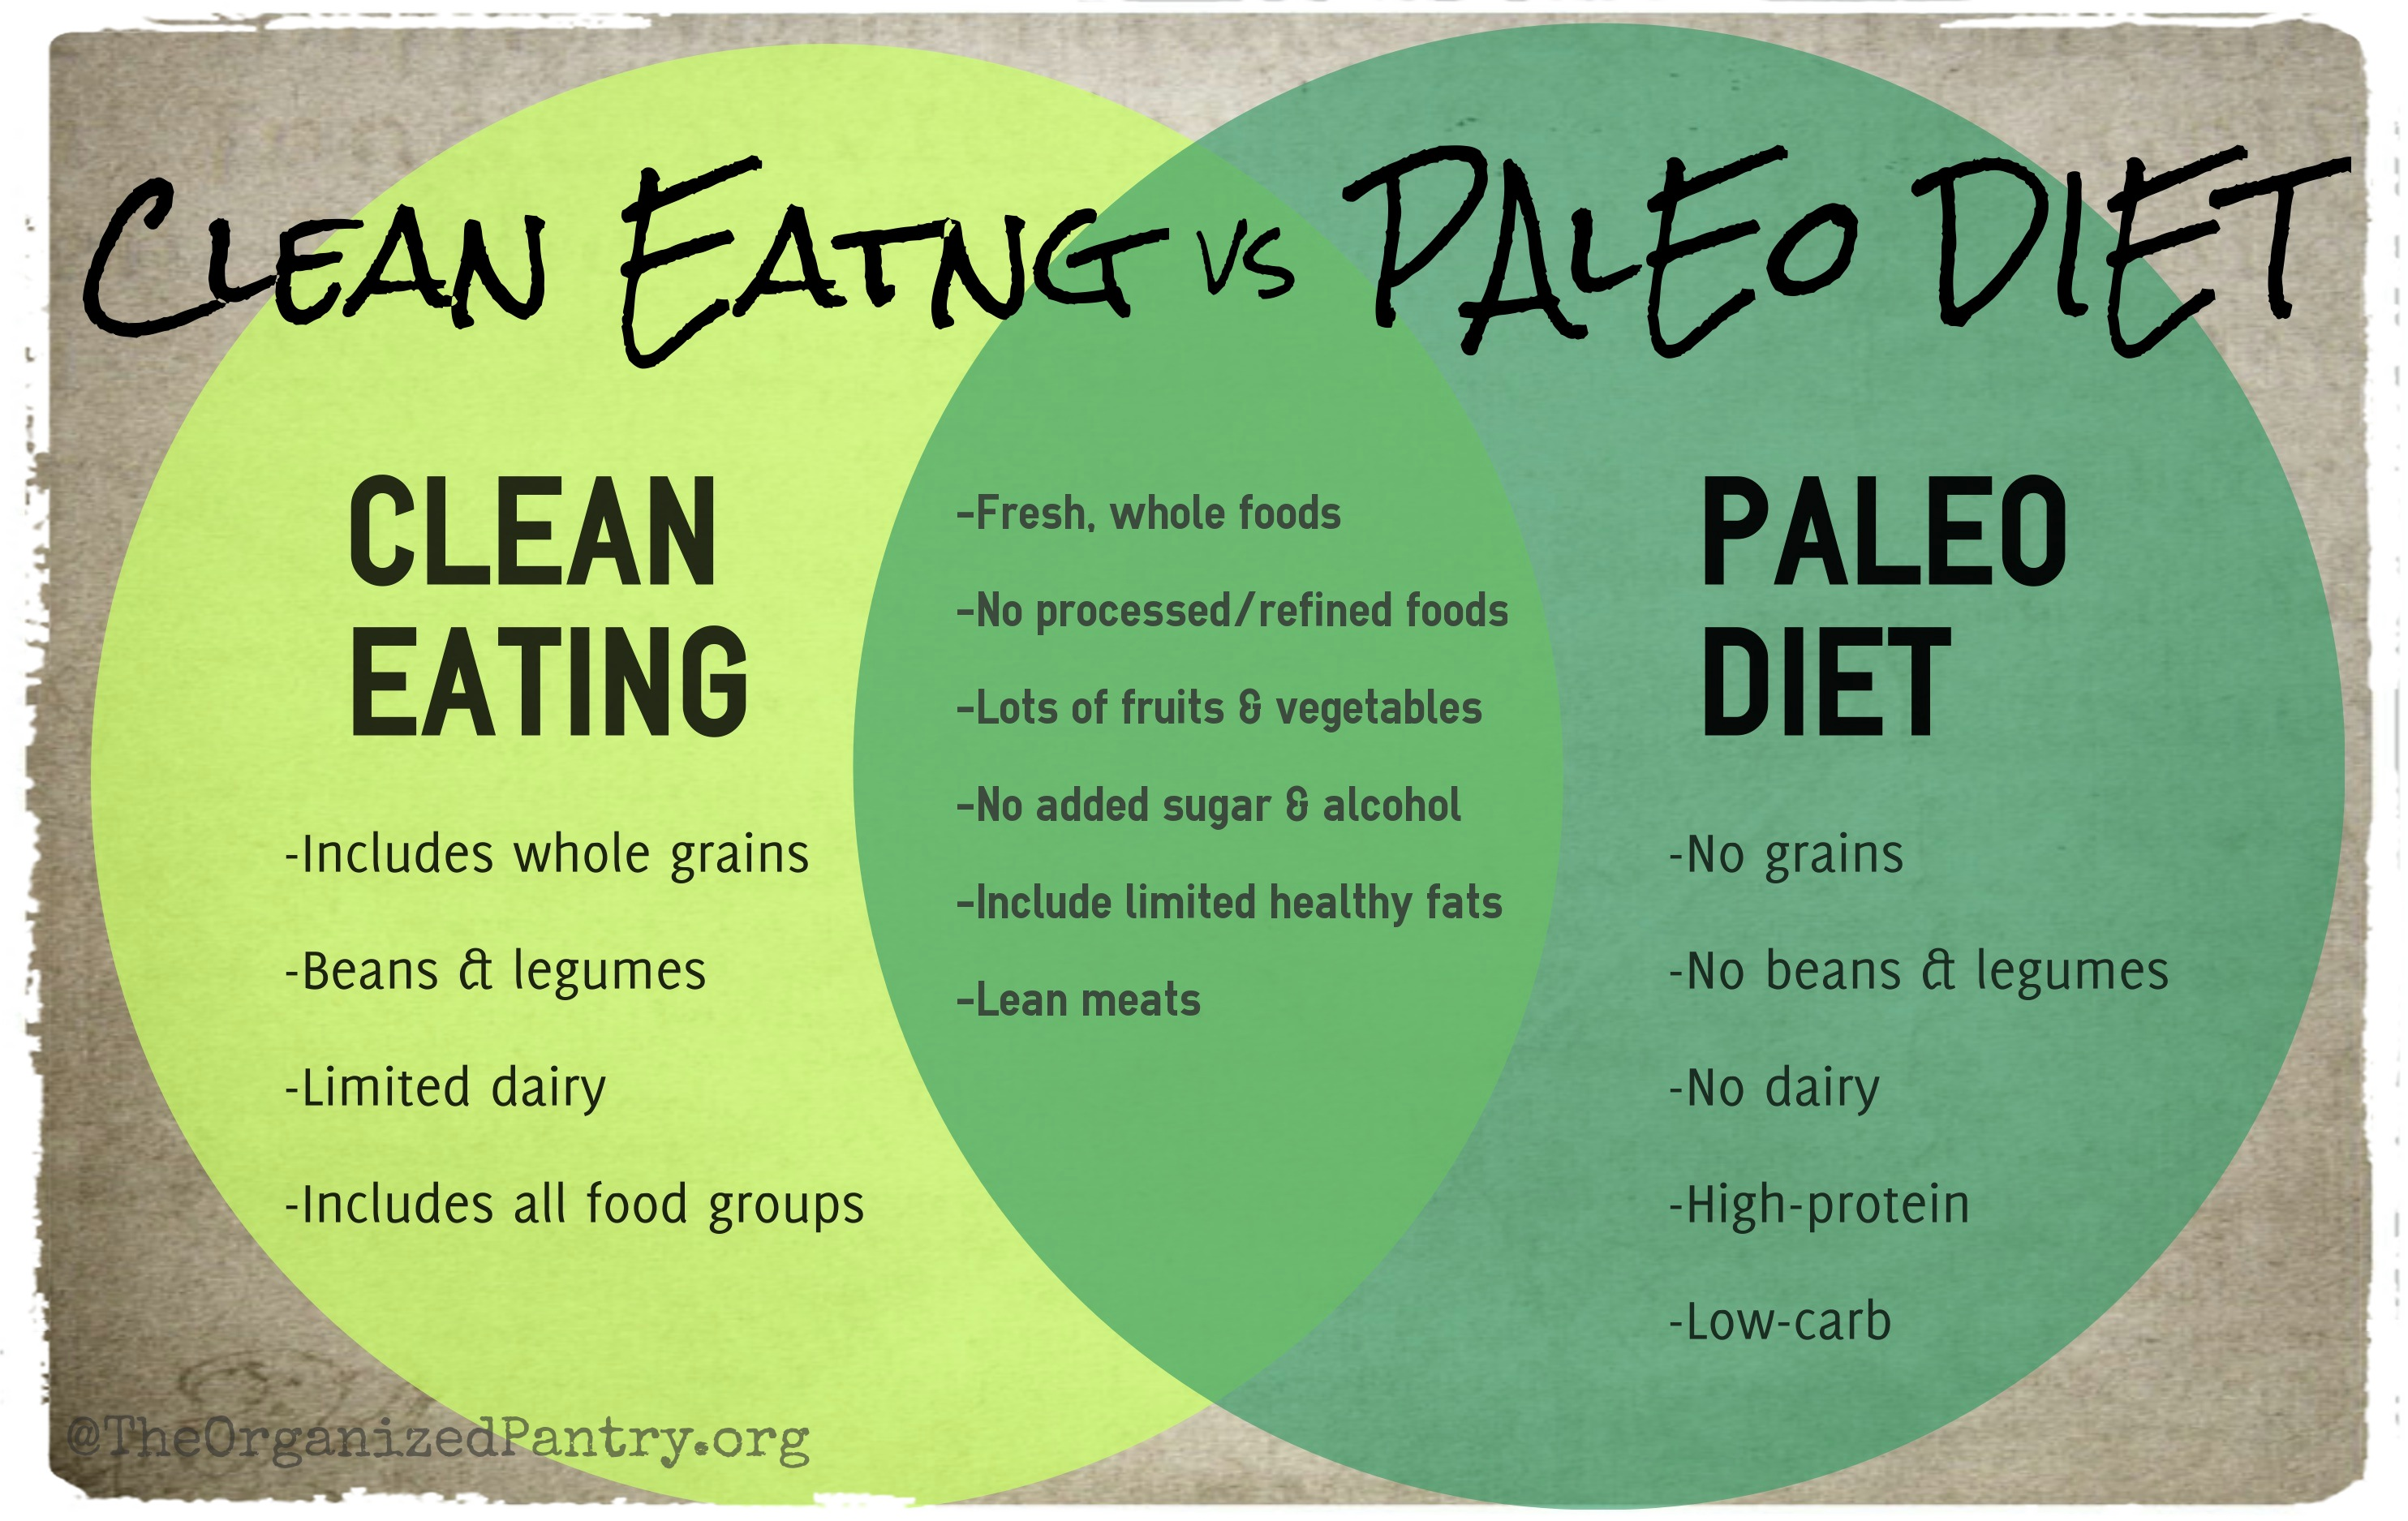 Paleo Eating vs. Low-Carb Eating